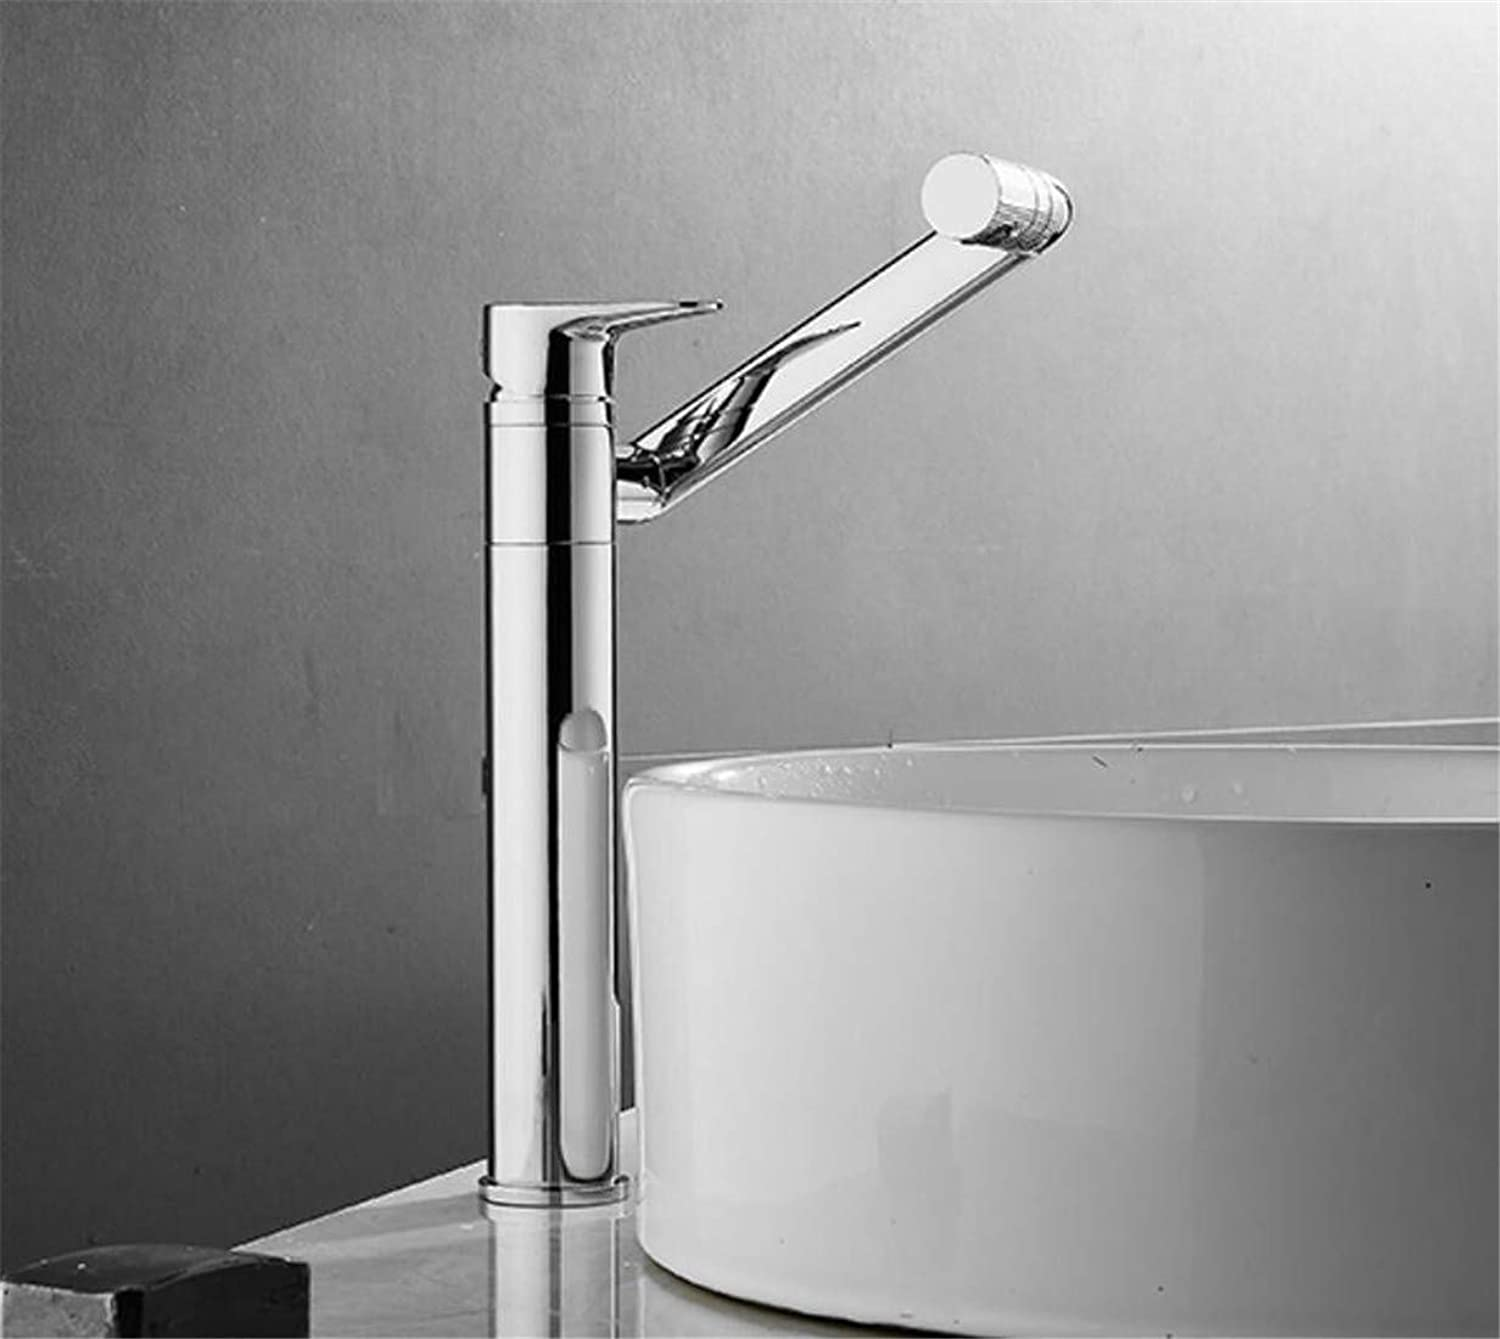 Mucert Tap,All Copper,redate Tap,Hot and Cold Water,Bathroom Basin Faucet,A